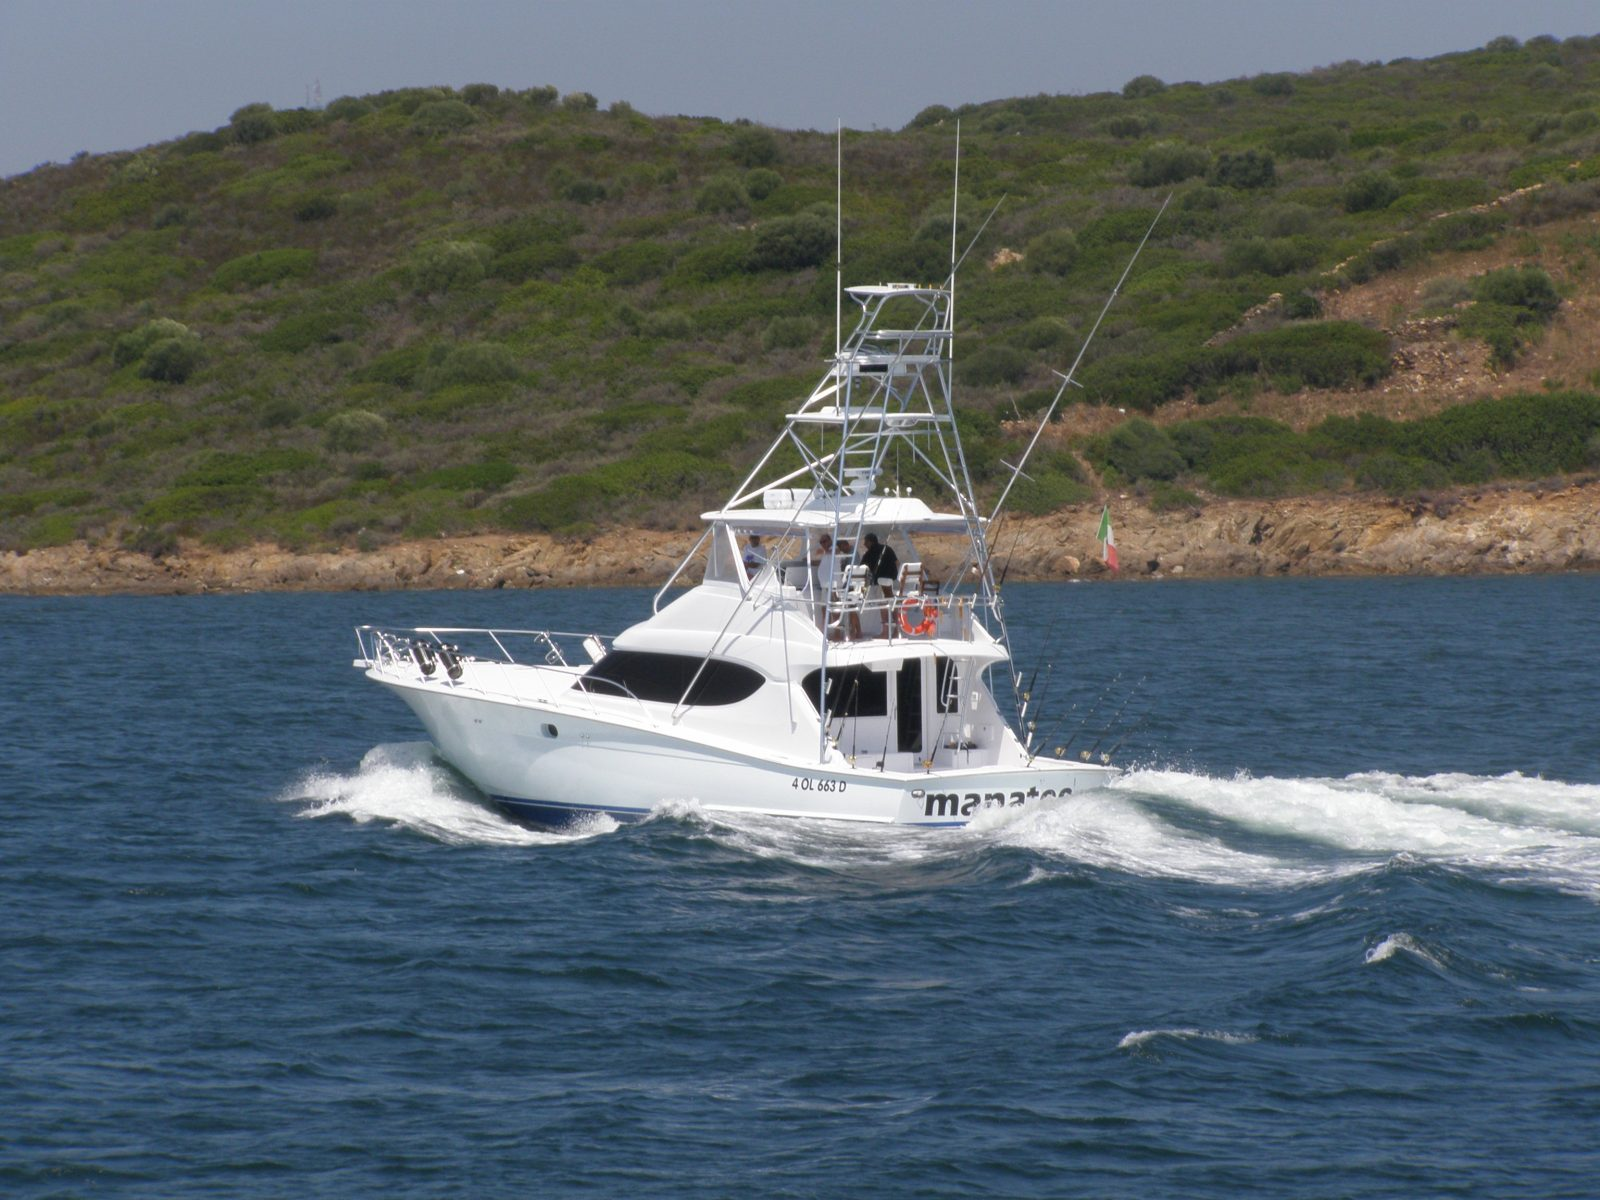 Luxury yacht for Sale | Manatee by Hatteras Yachts